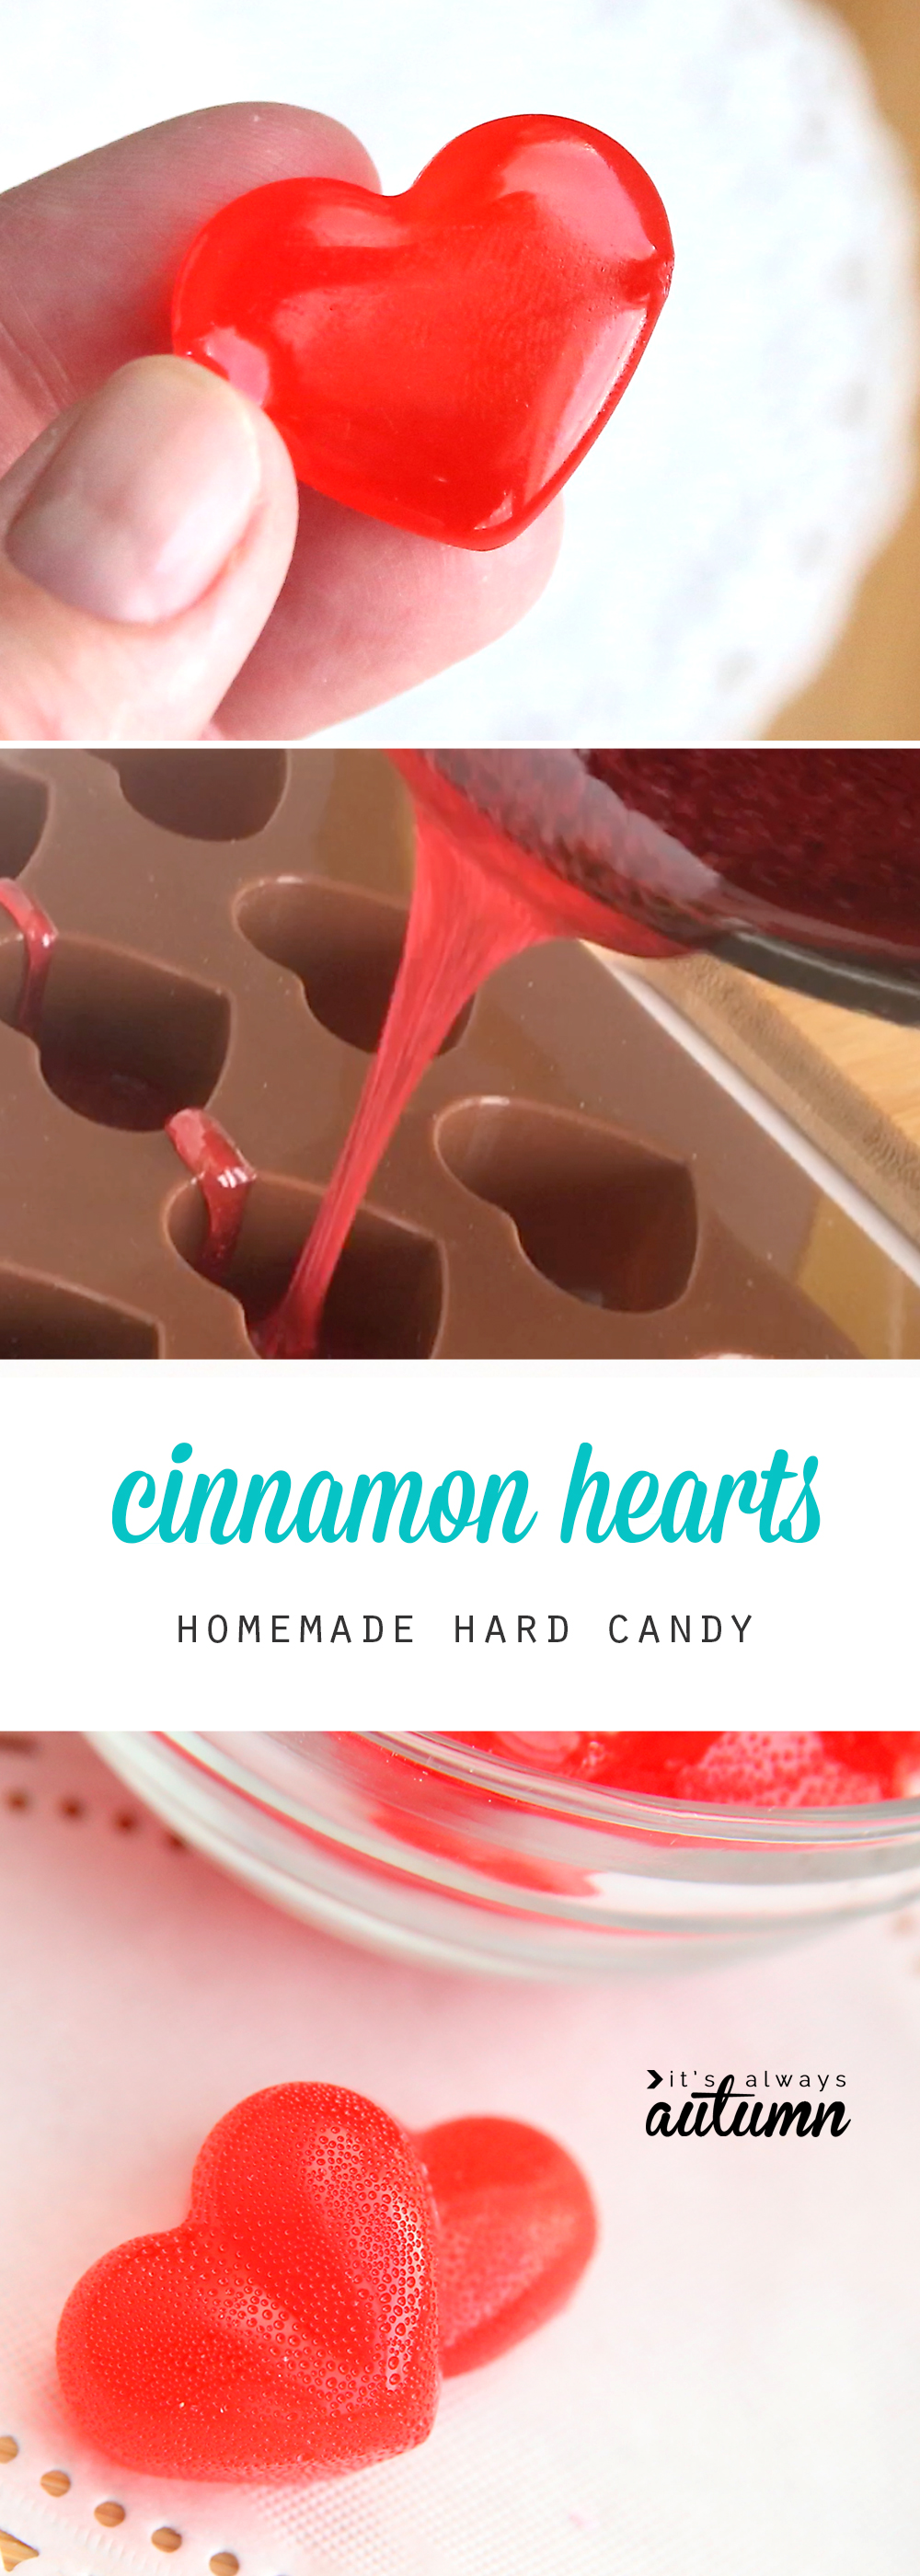 Cinnamon heart candy; melted candy being poured into heart molds